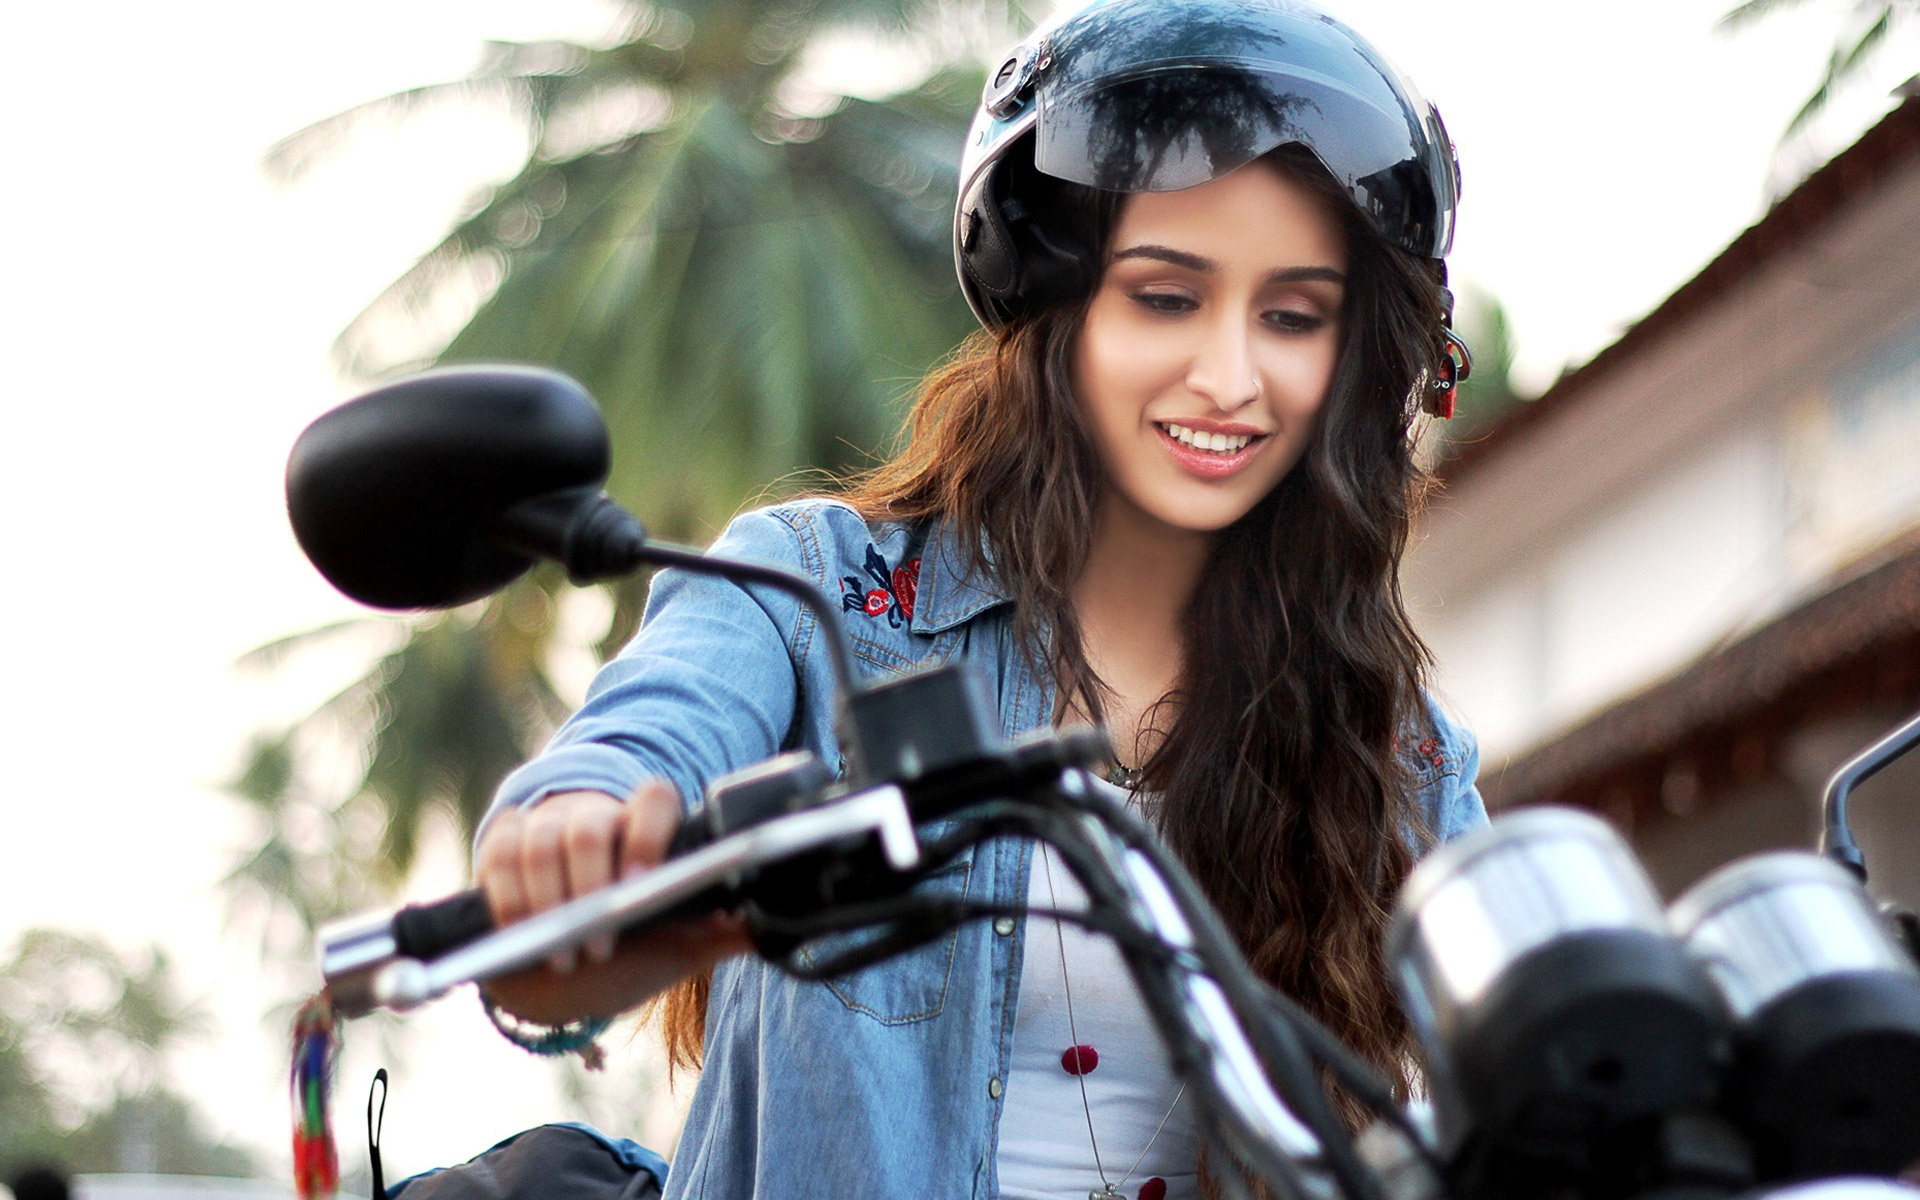 shraddha kapoor very cute, hd indian celebrities, 4k wallpapers